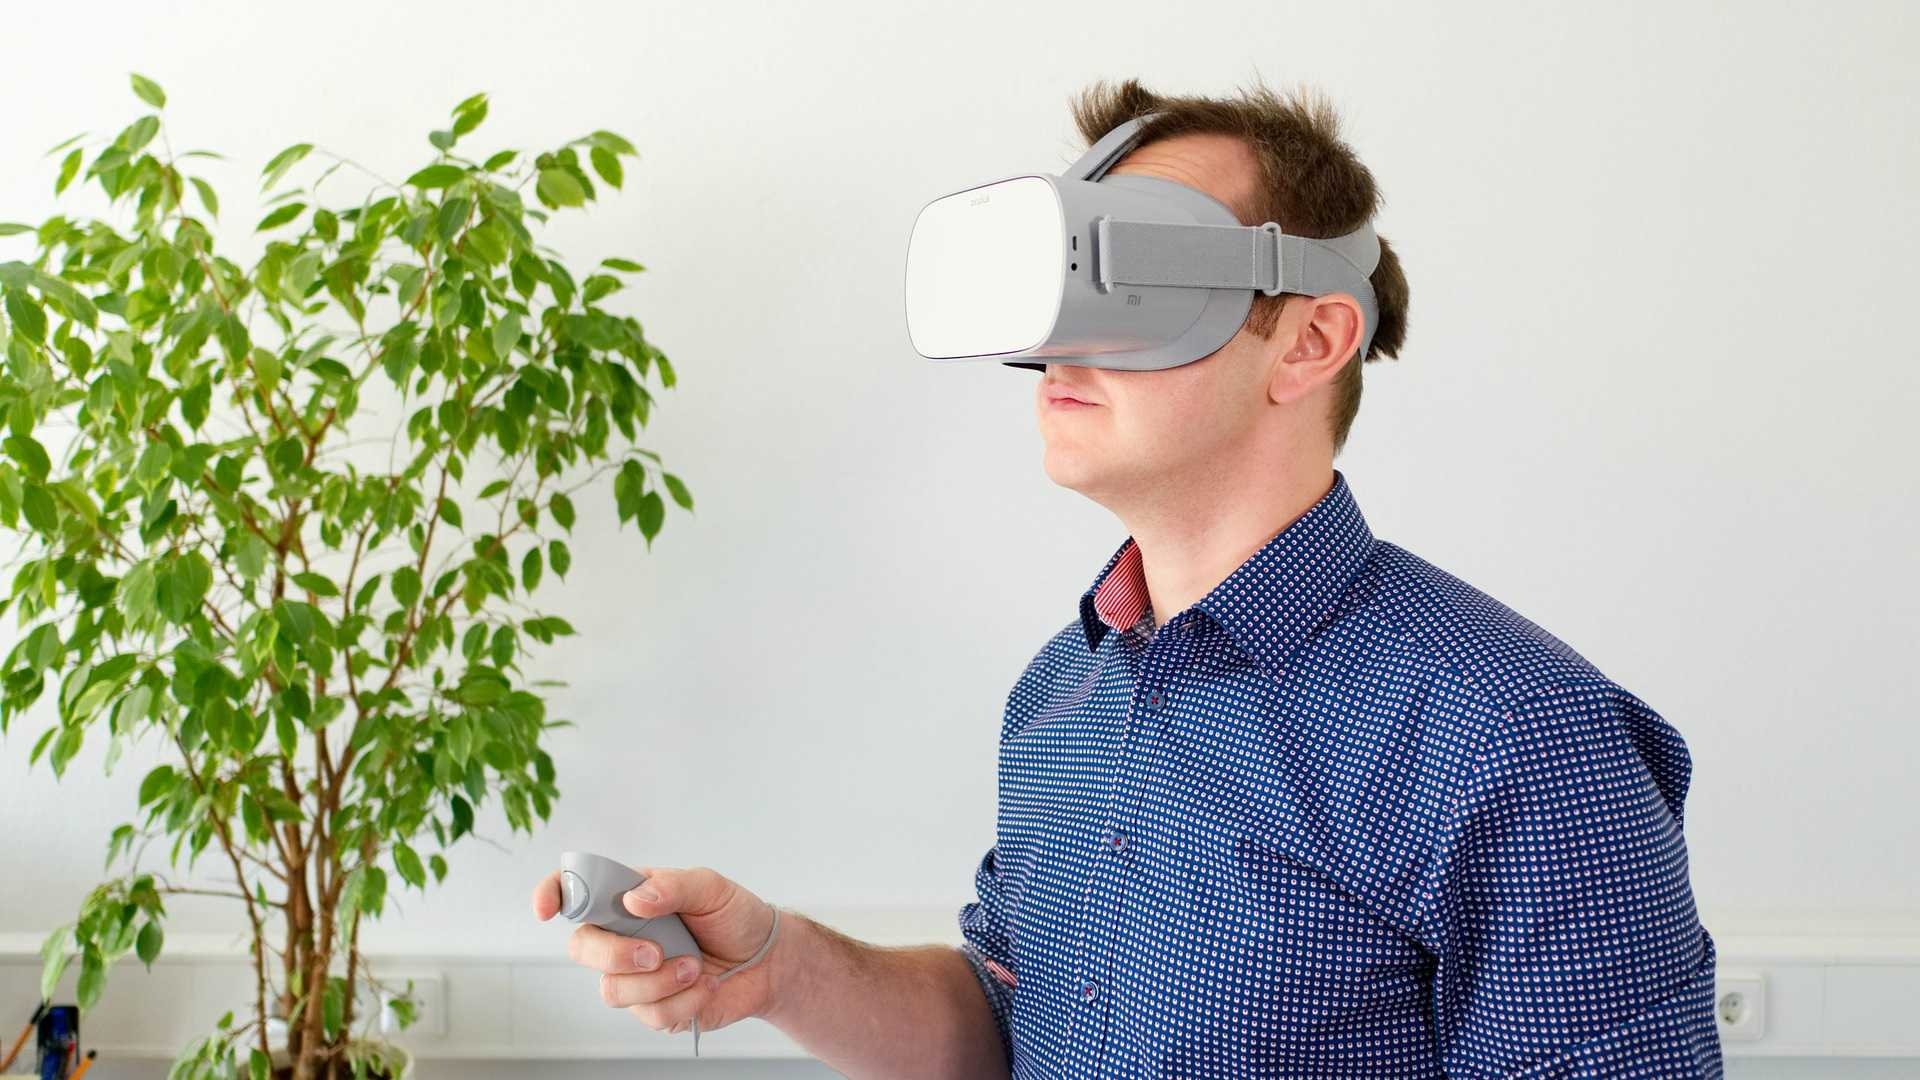 Pros and Cons of Using Extended Reality in Employee Training